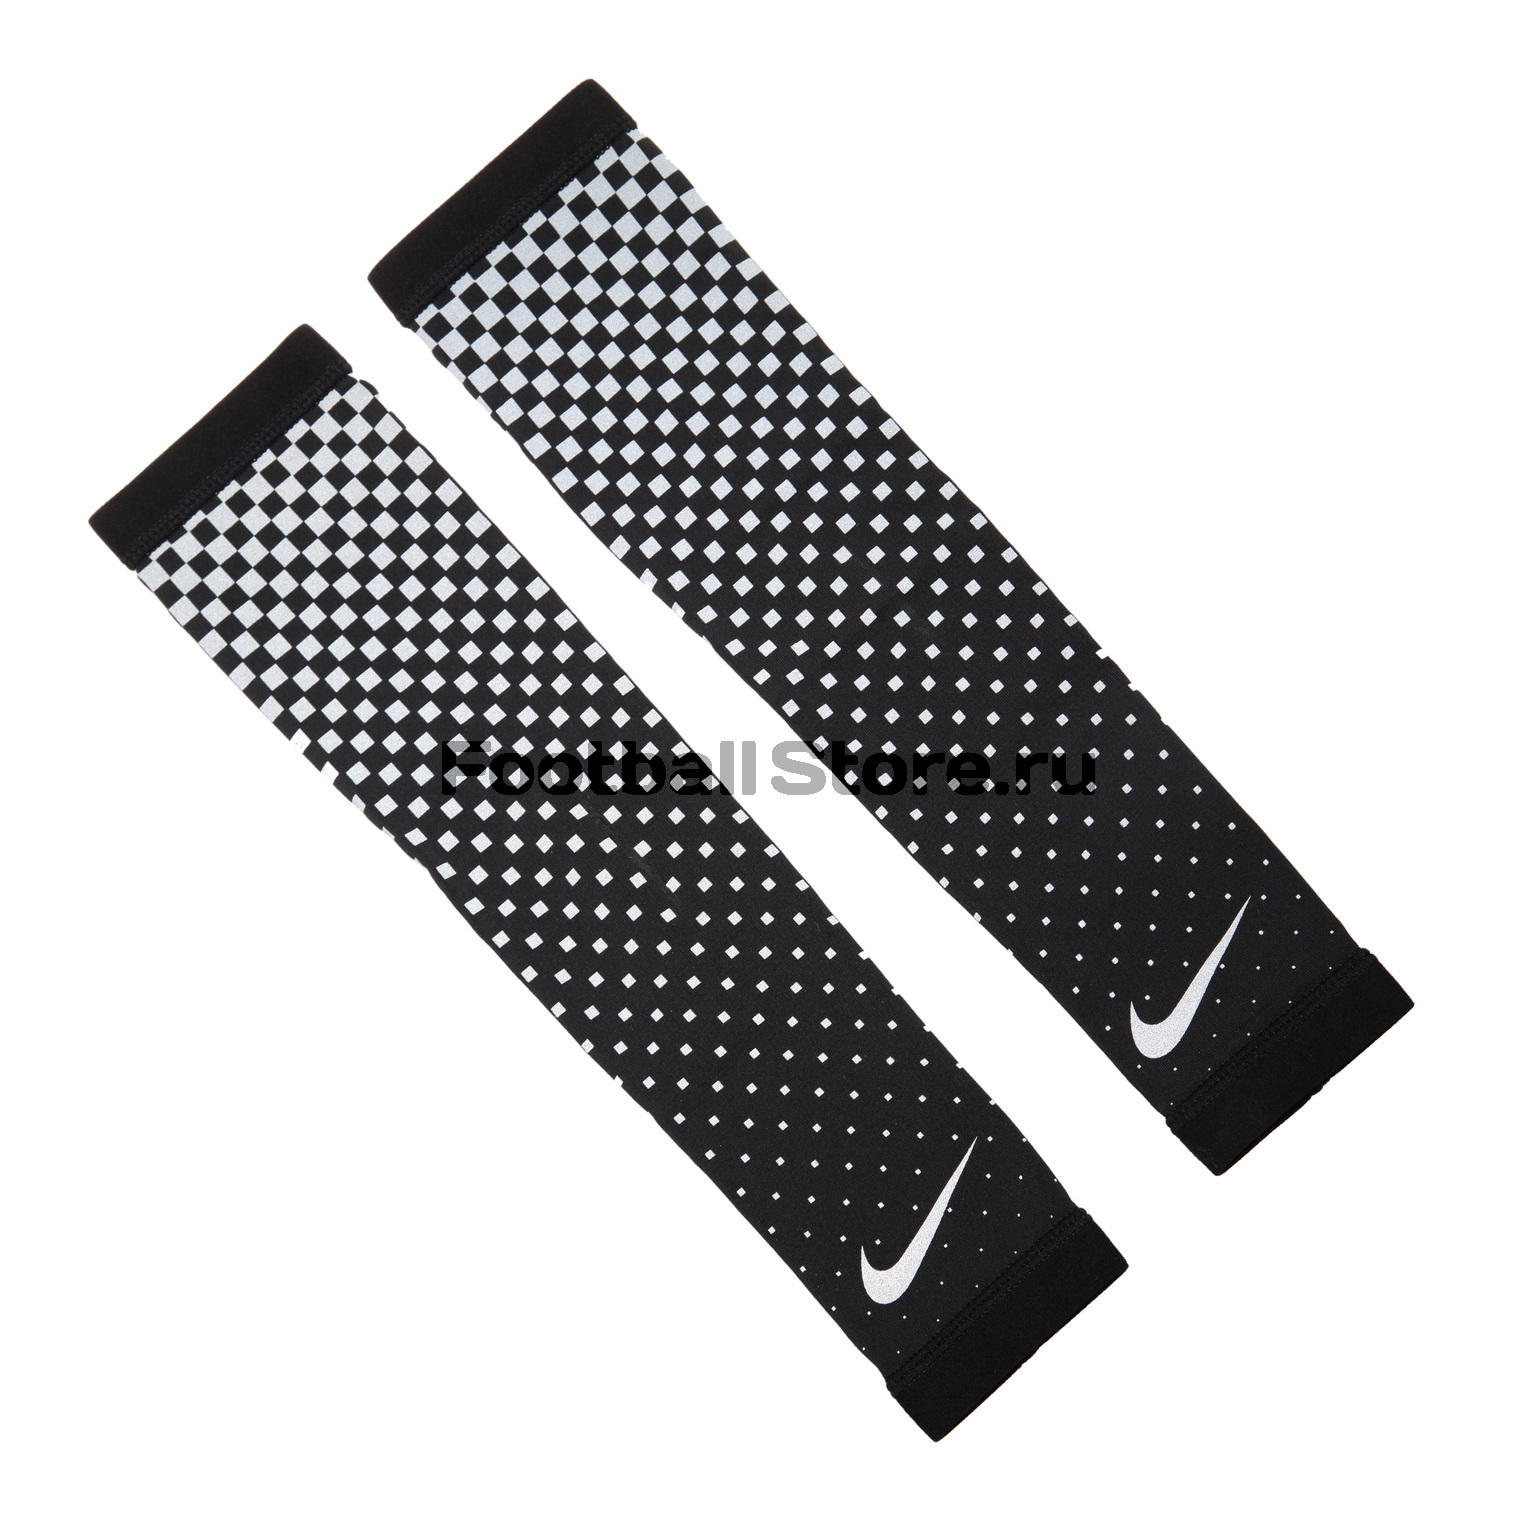 Нарукавник Nike Dri-Fit 360 Arm Sleeves N.RS.97.001.LX pair of stylish faux gem embellished warmth knitted arm sleeves for women